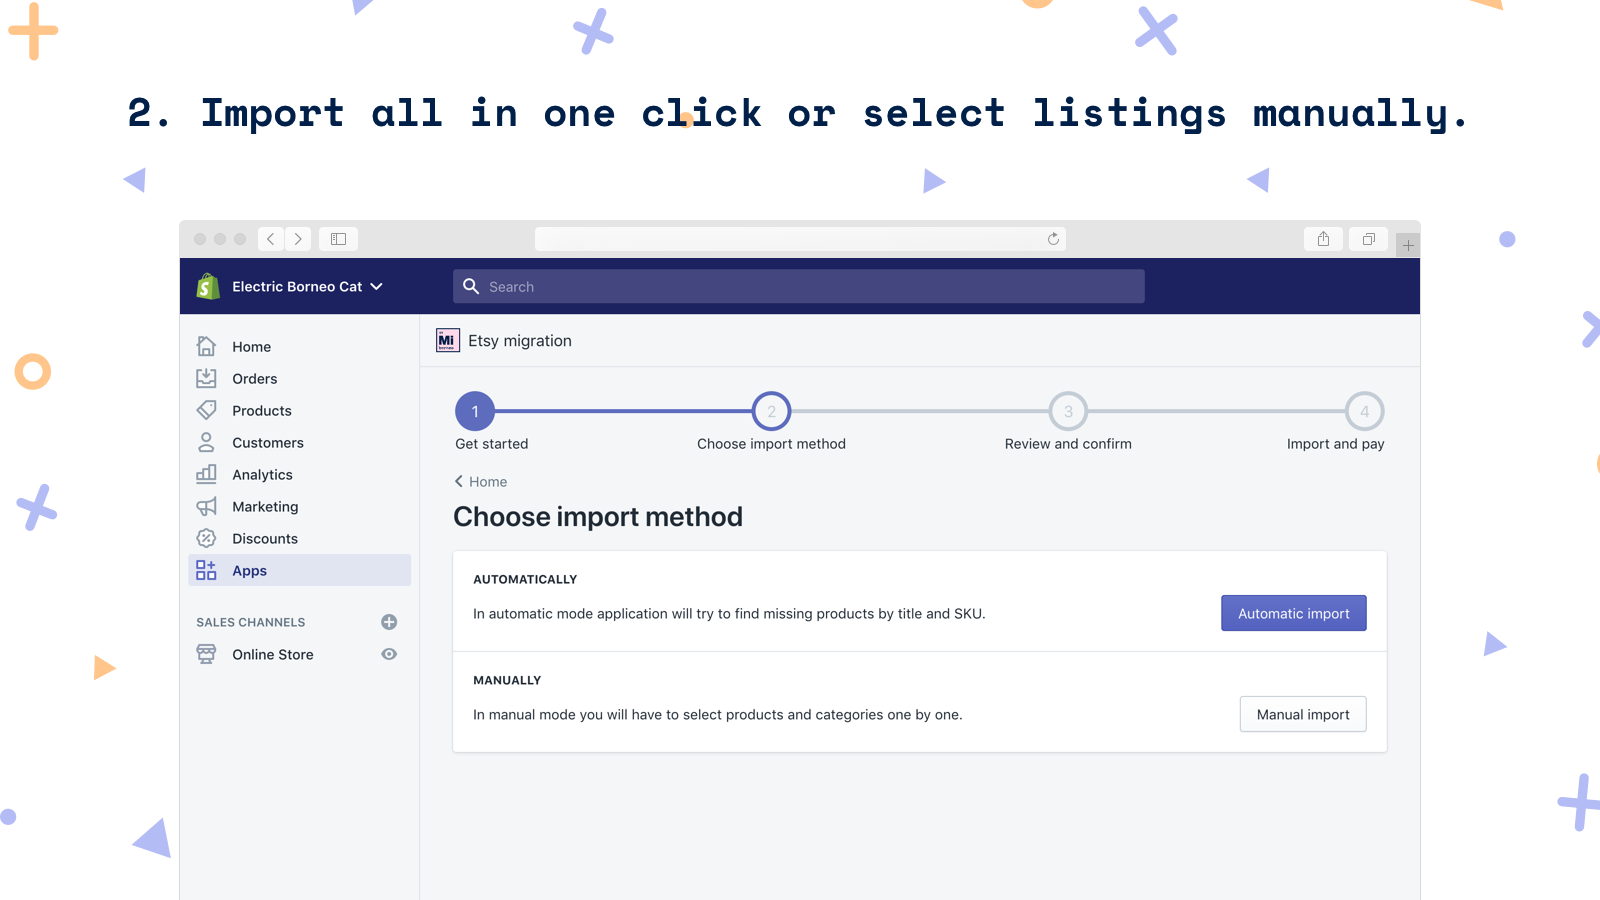 Import all in one click or select listings manually.